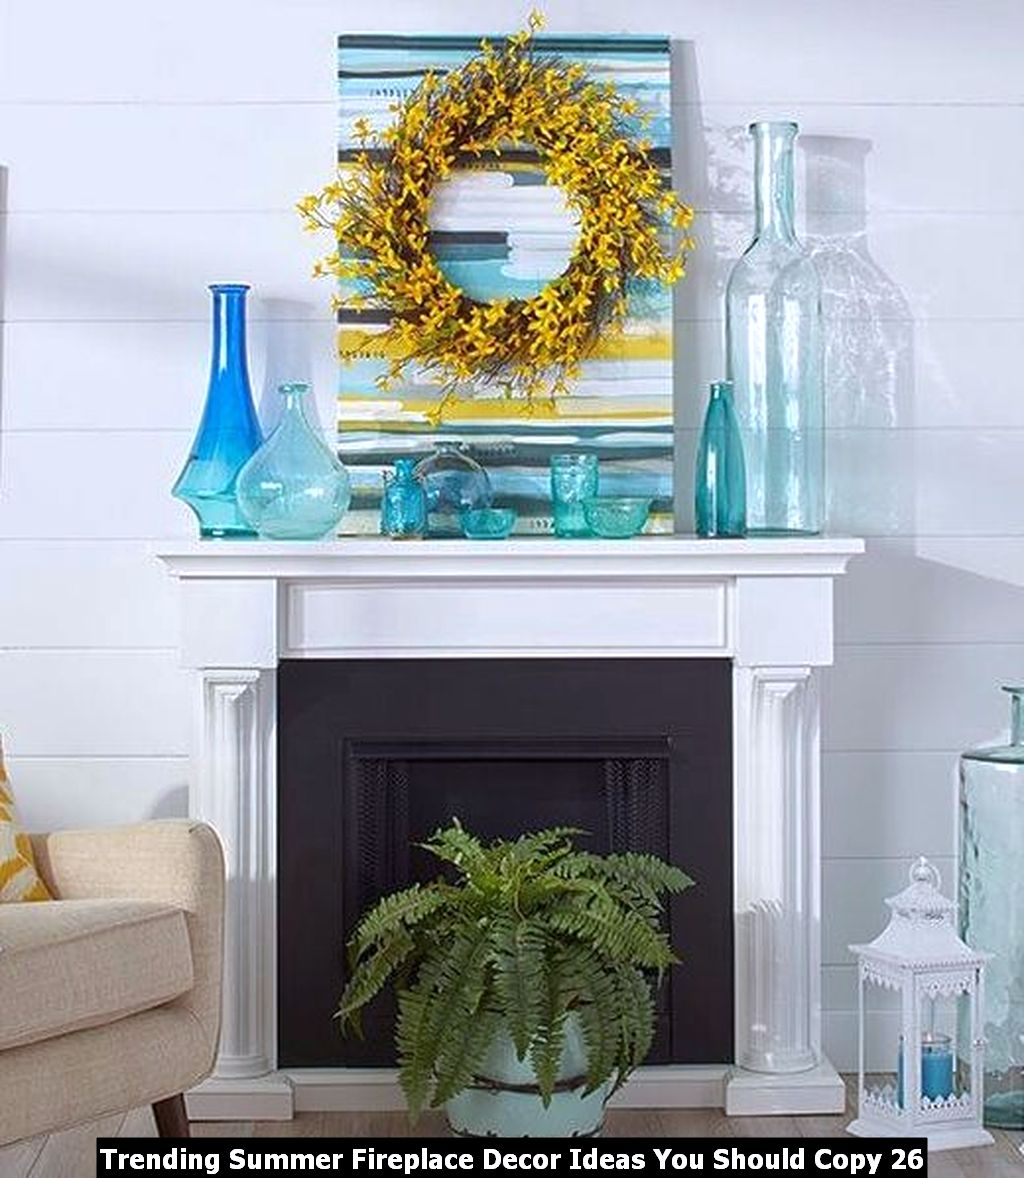 Trending Summer Fireplace Decor Ideas You Should Copy 26